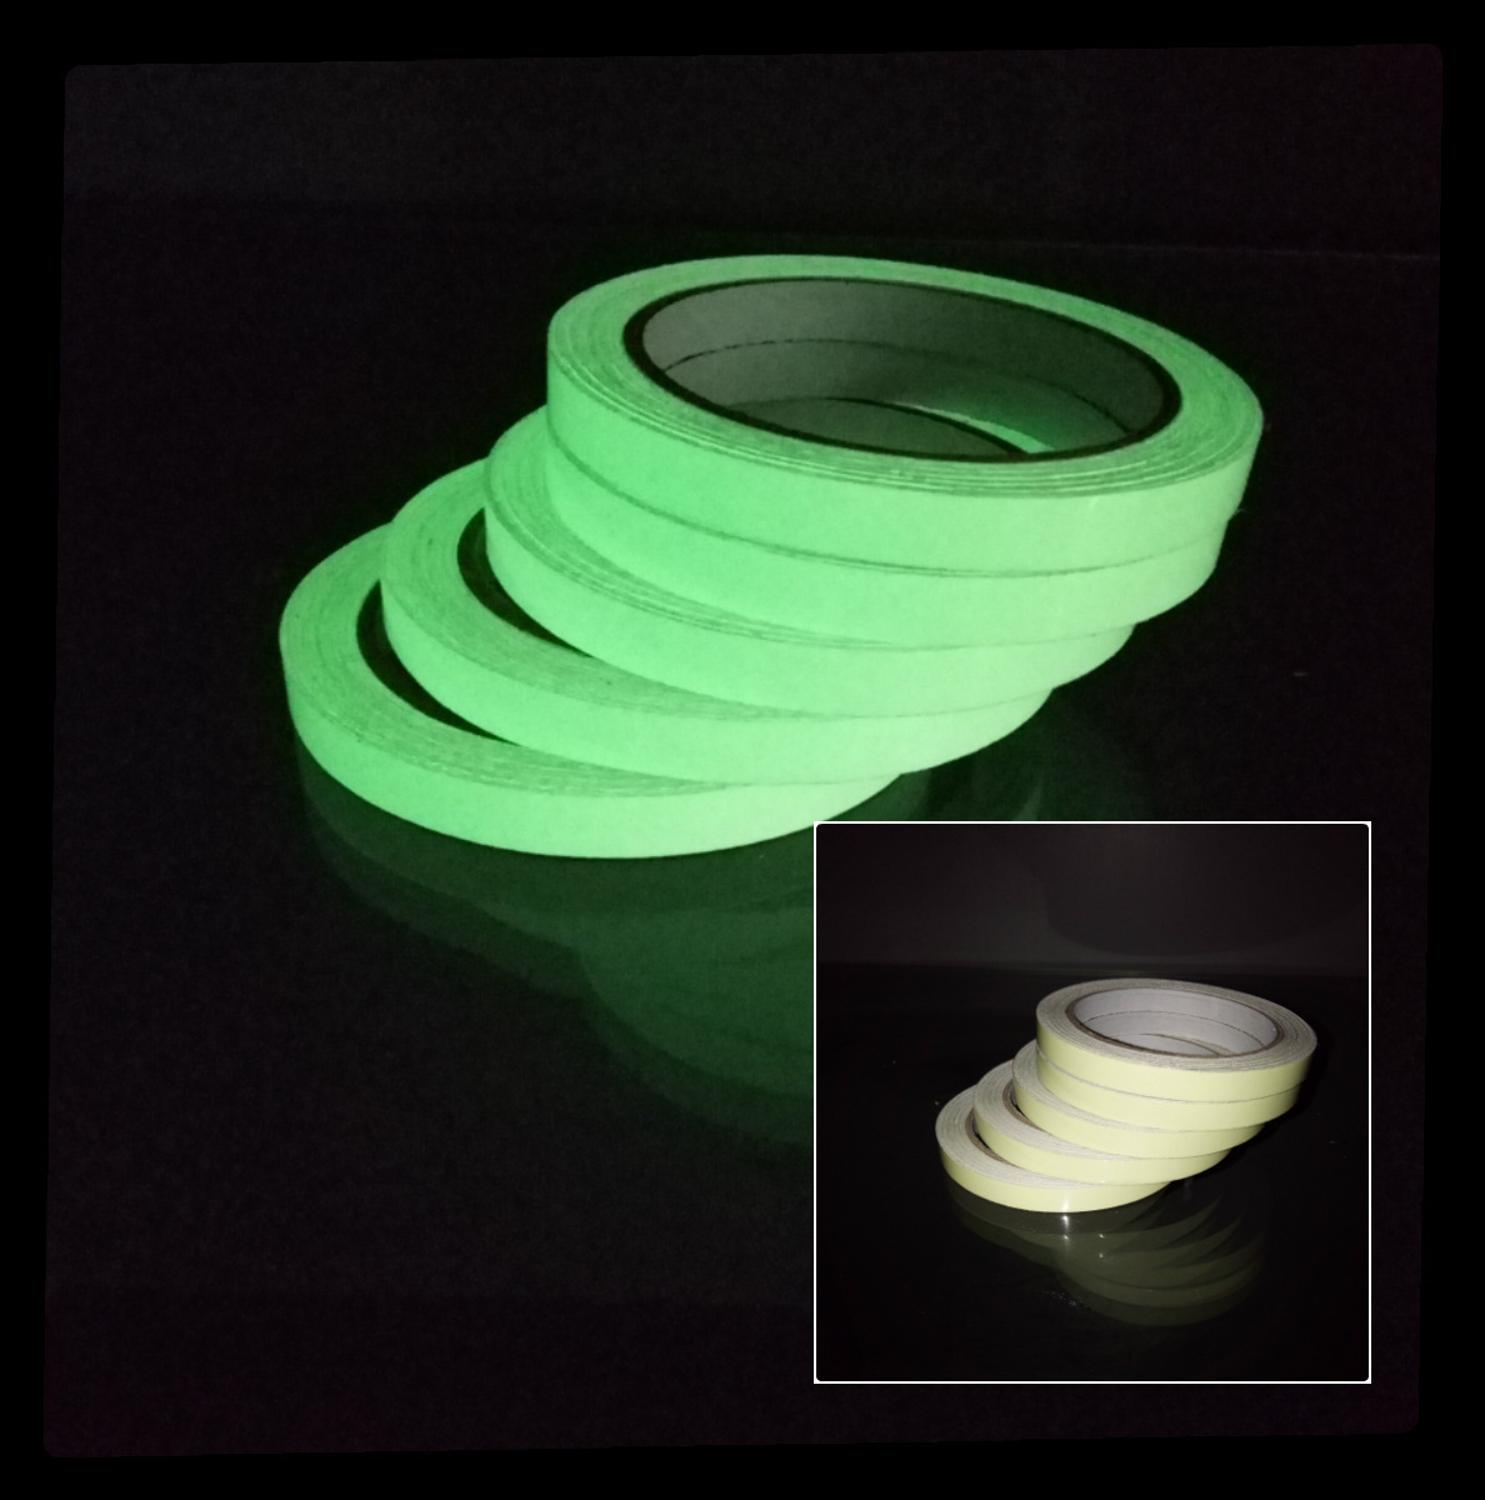 Luminous Tape Self Adhesive PET Warning Tape Night Vision Glow In Dark Wall Sticker Fluorescent Emergency Stickers Glow In Dark